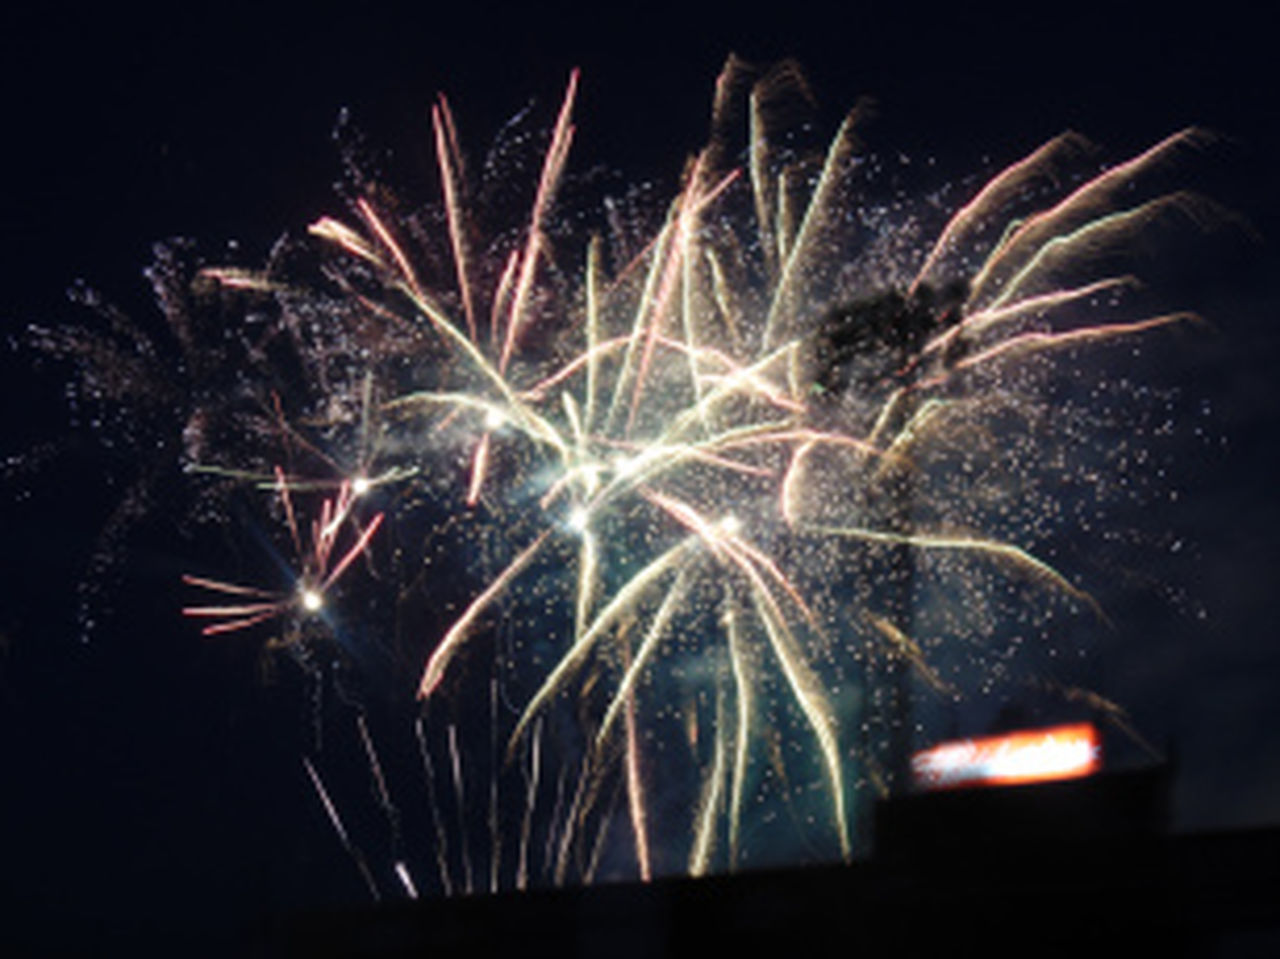 night, firework display, firework - man made object, exploding, celebration, long exposure, arts culture and entertainment, illuminated, no people, black background, multi colored, sky, outdoors, close-up